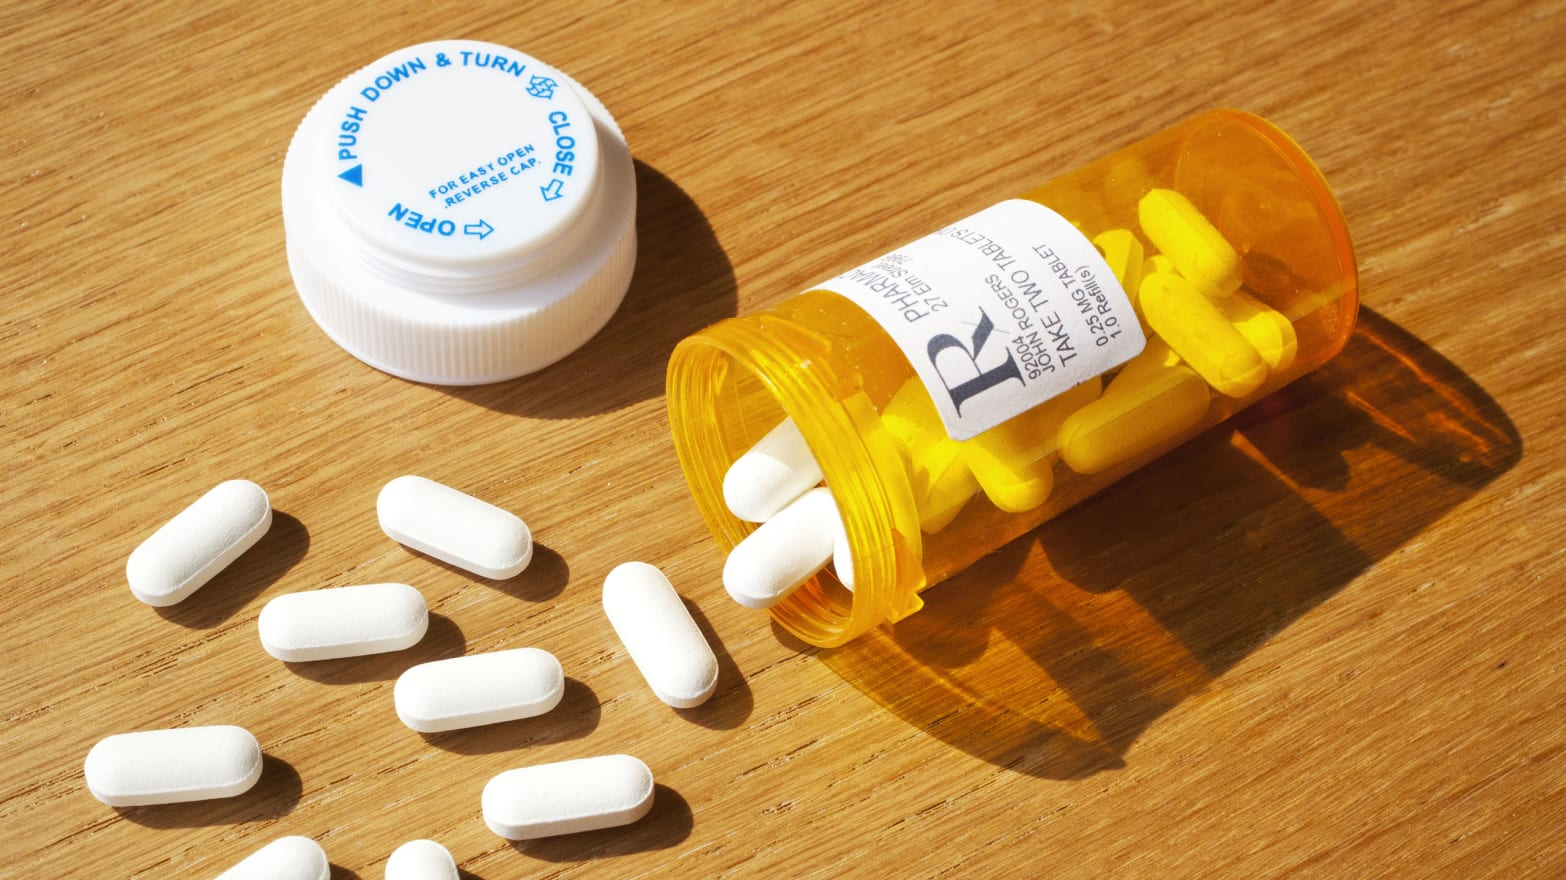 Painkiller Overdoses Kill More Than One American Every Hour